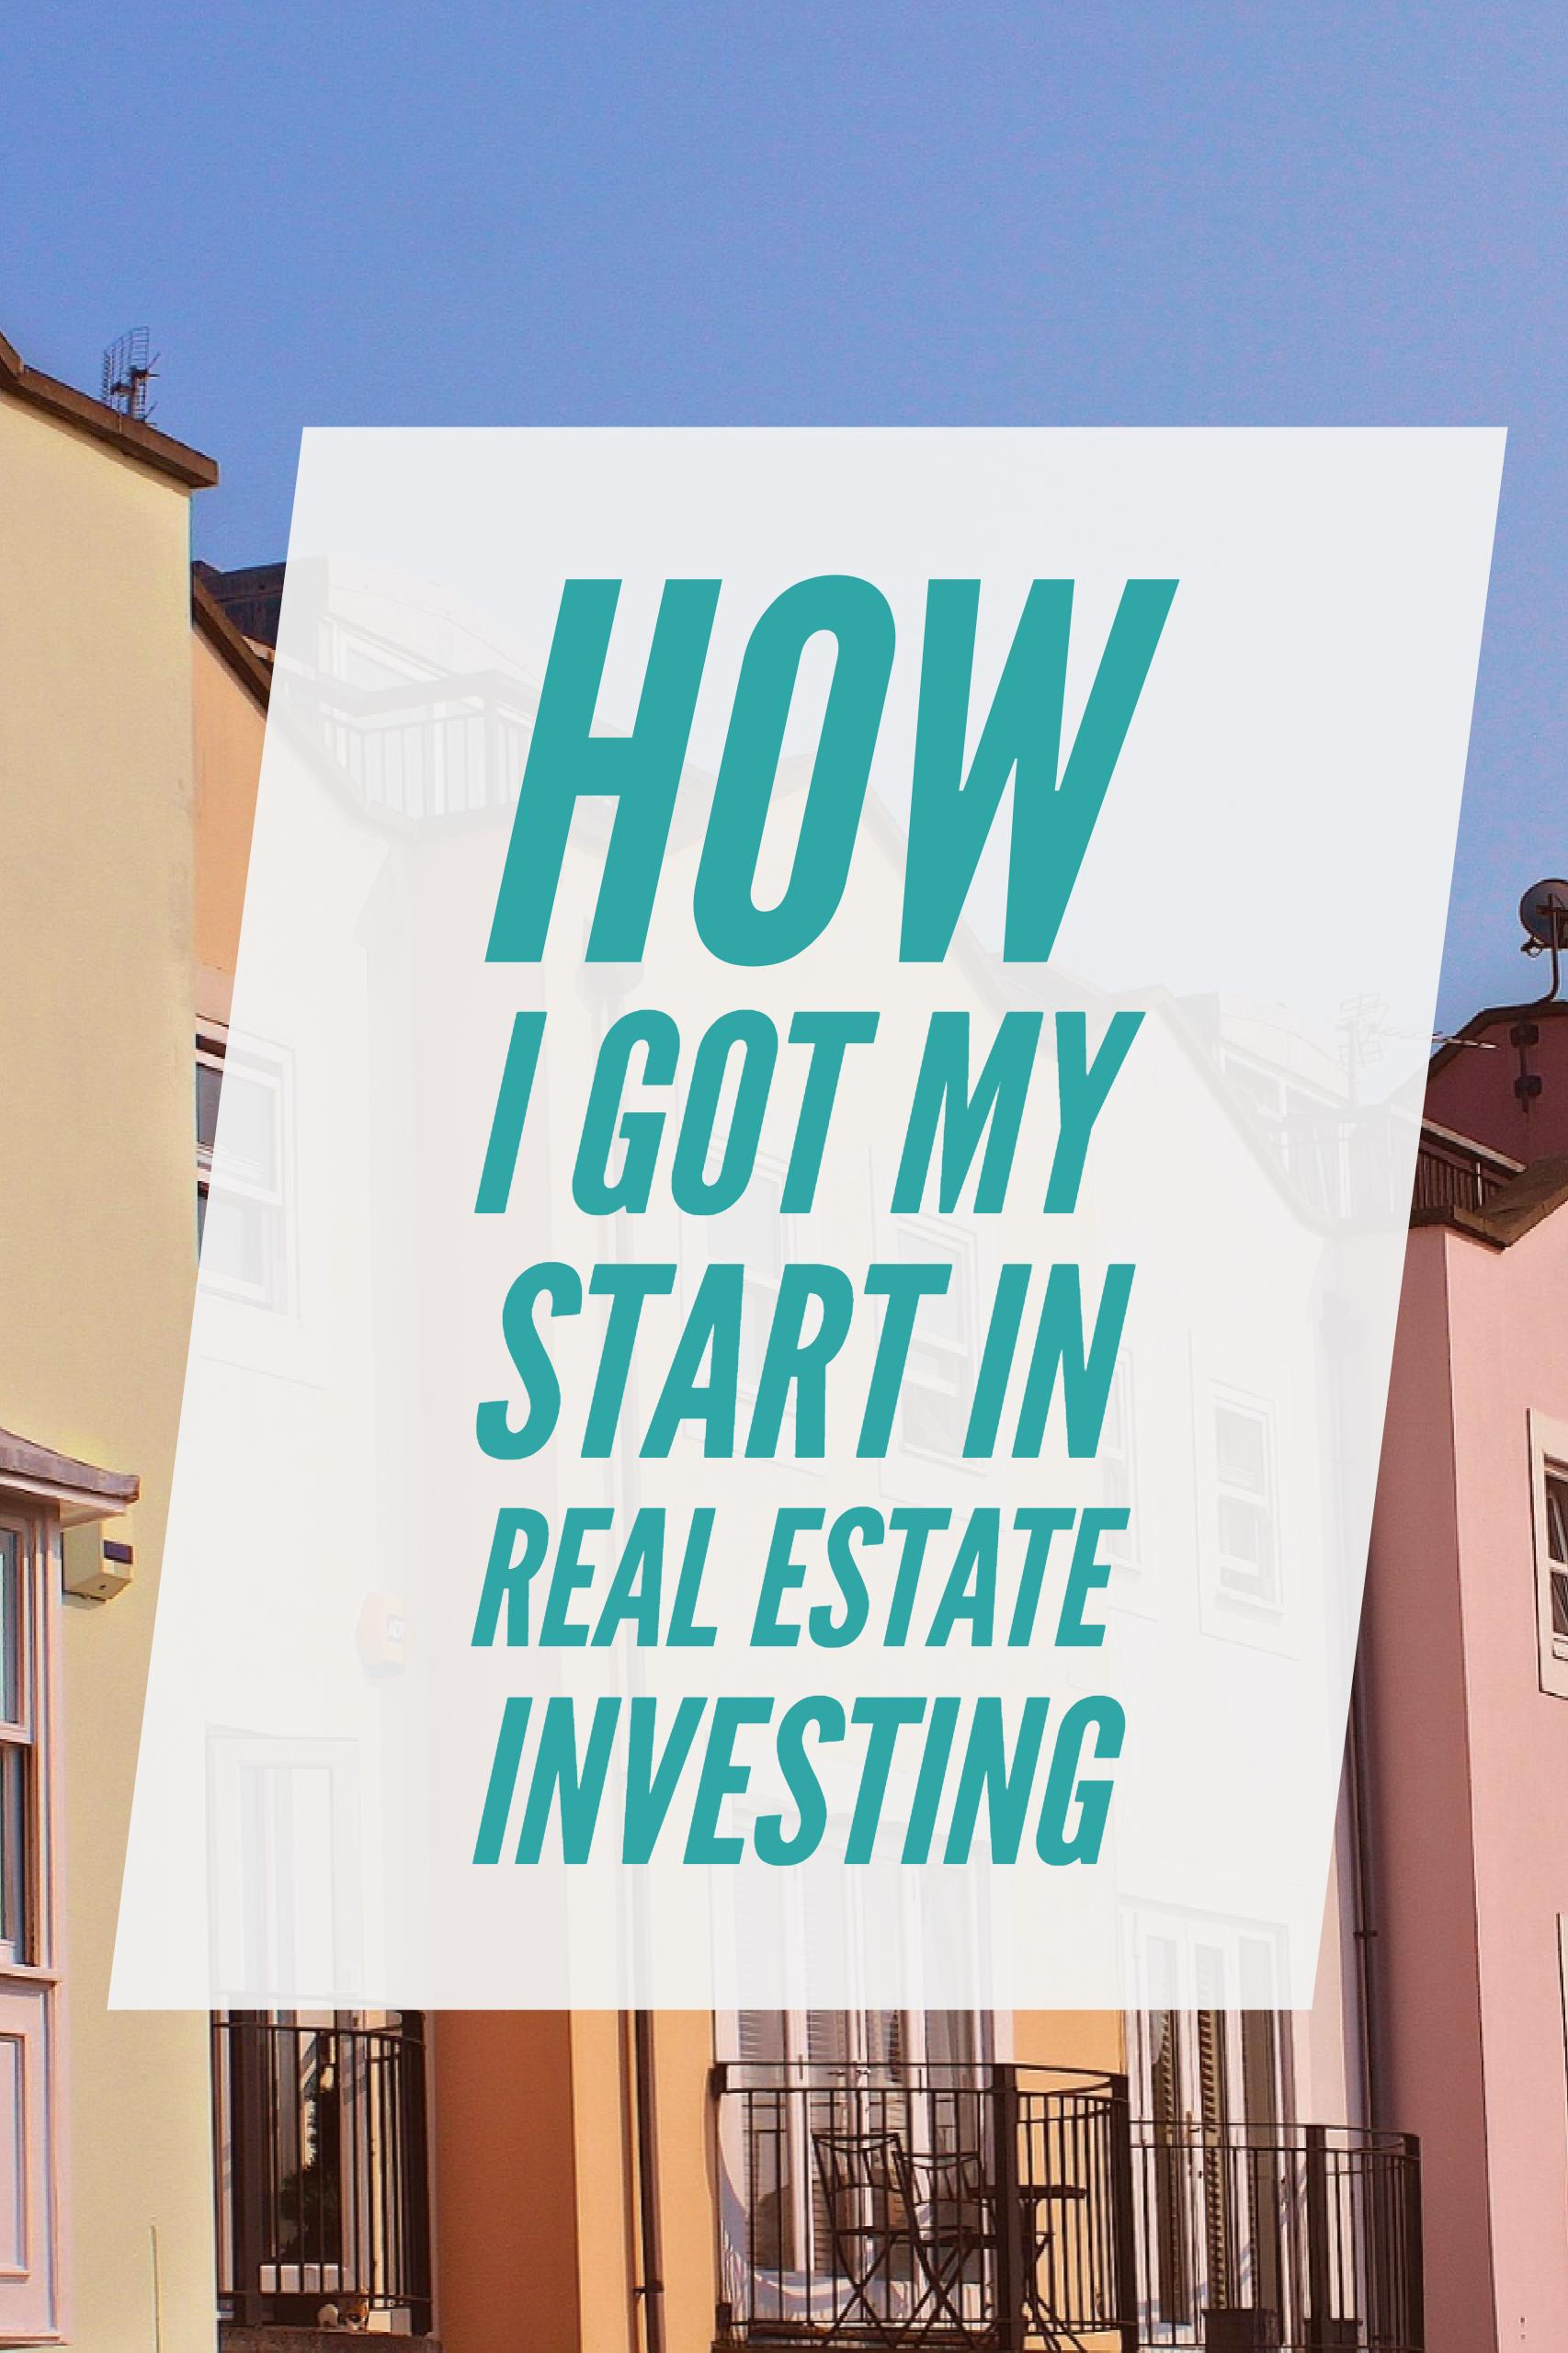 I love investing in real estate. It\'s a good mix of solid returns, monthly cashflow, and things I can touch. My start wasn\'t spectacular, but gives insight into how anyone can get their start investing in real estate. If you have been considering adding real estate to your portfolio, let my personal story guide your decision.